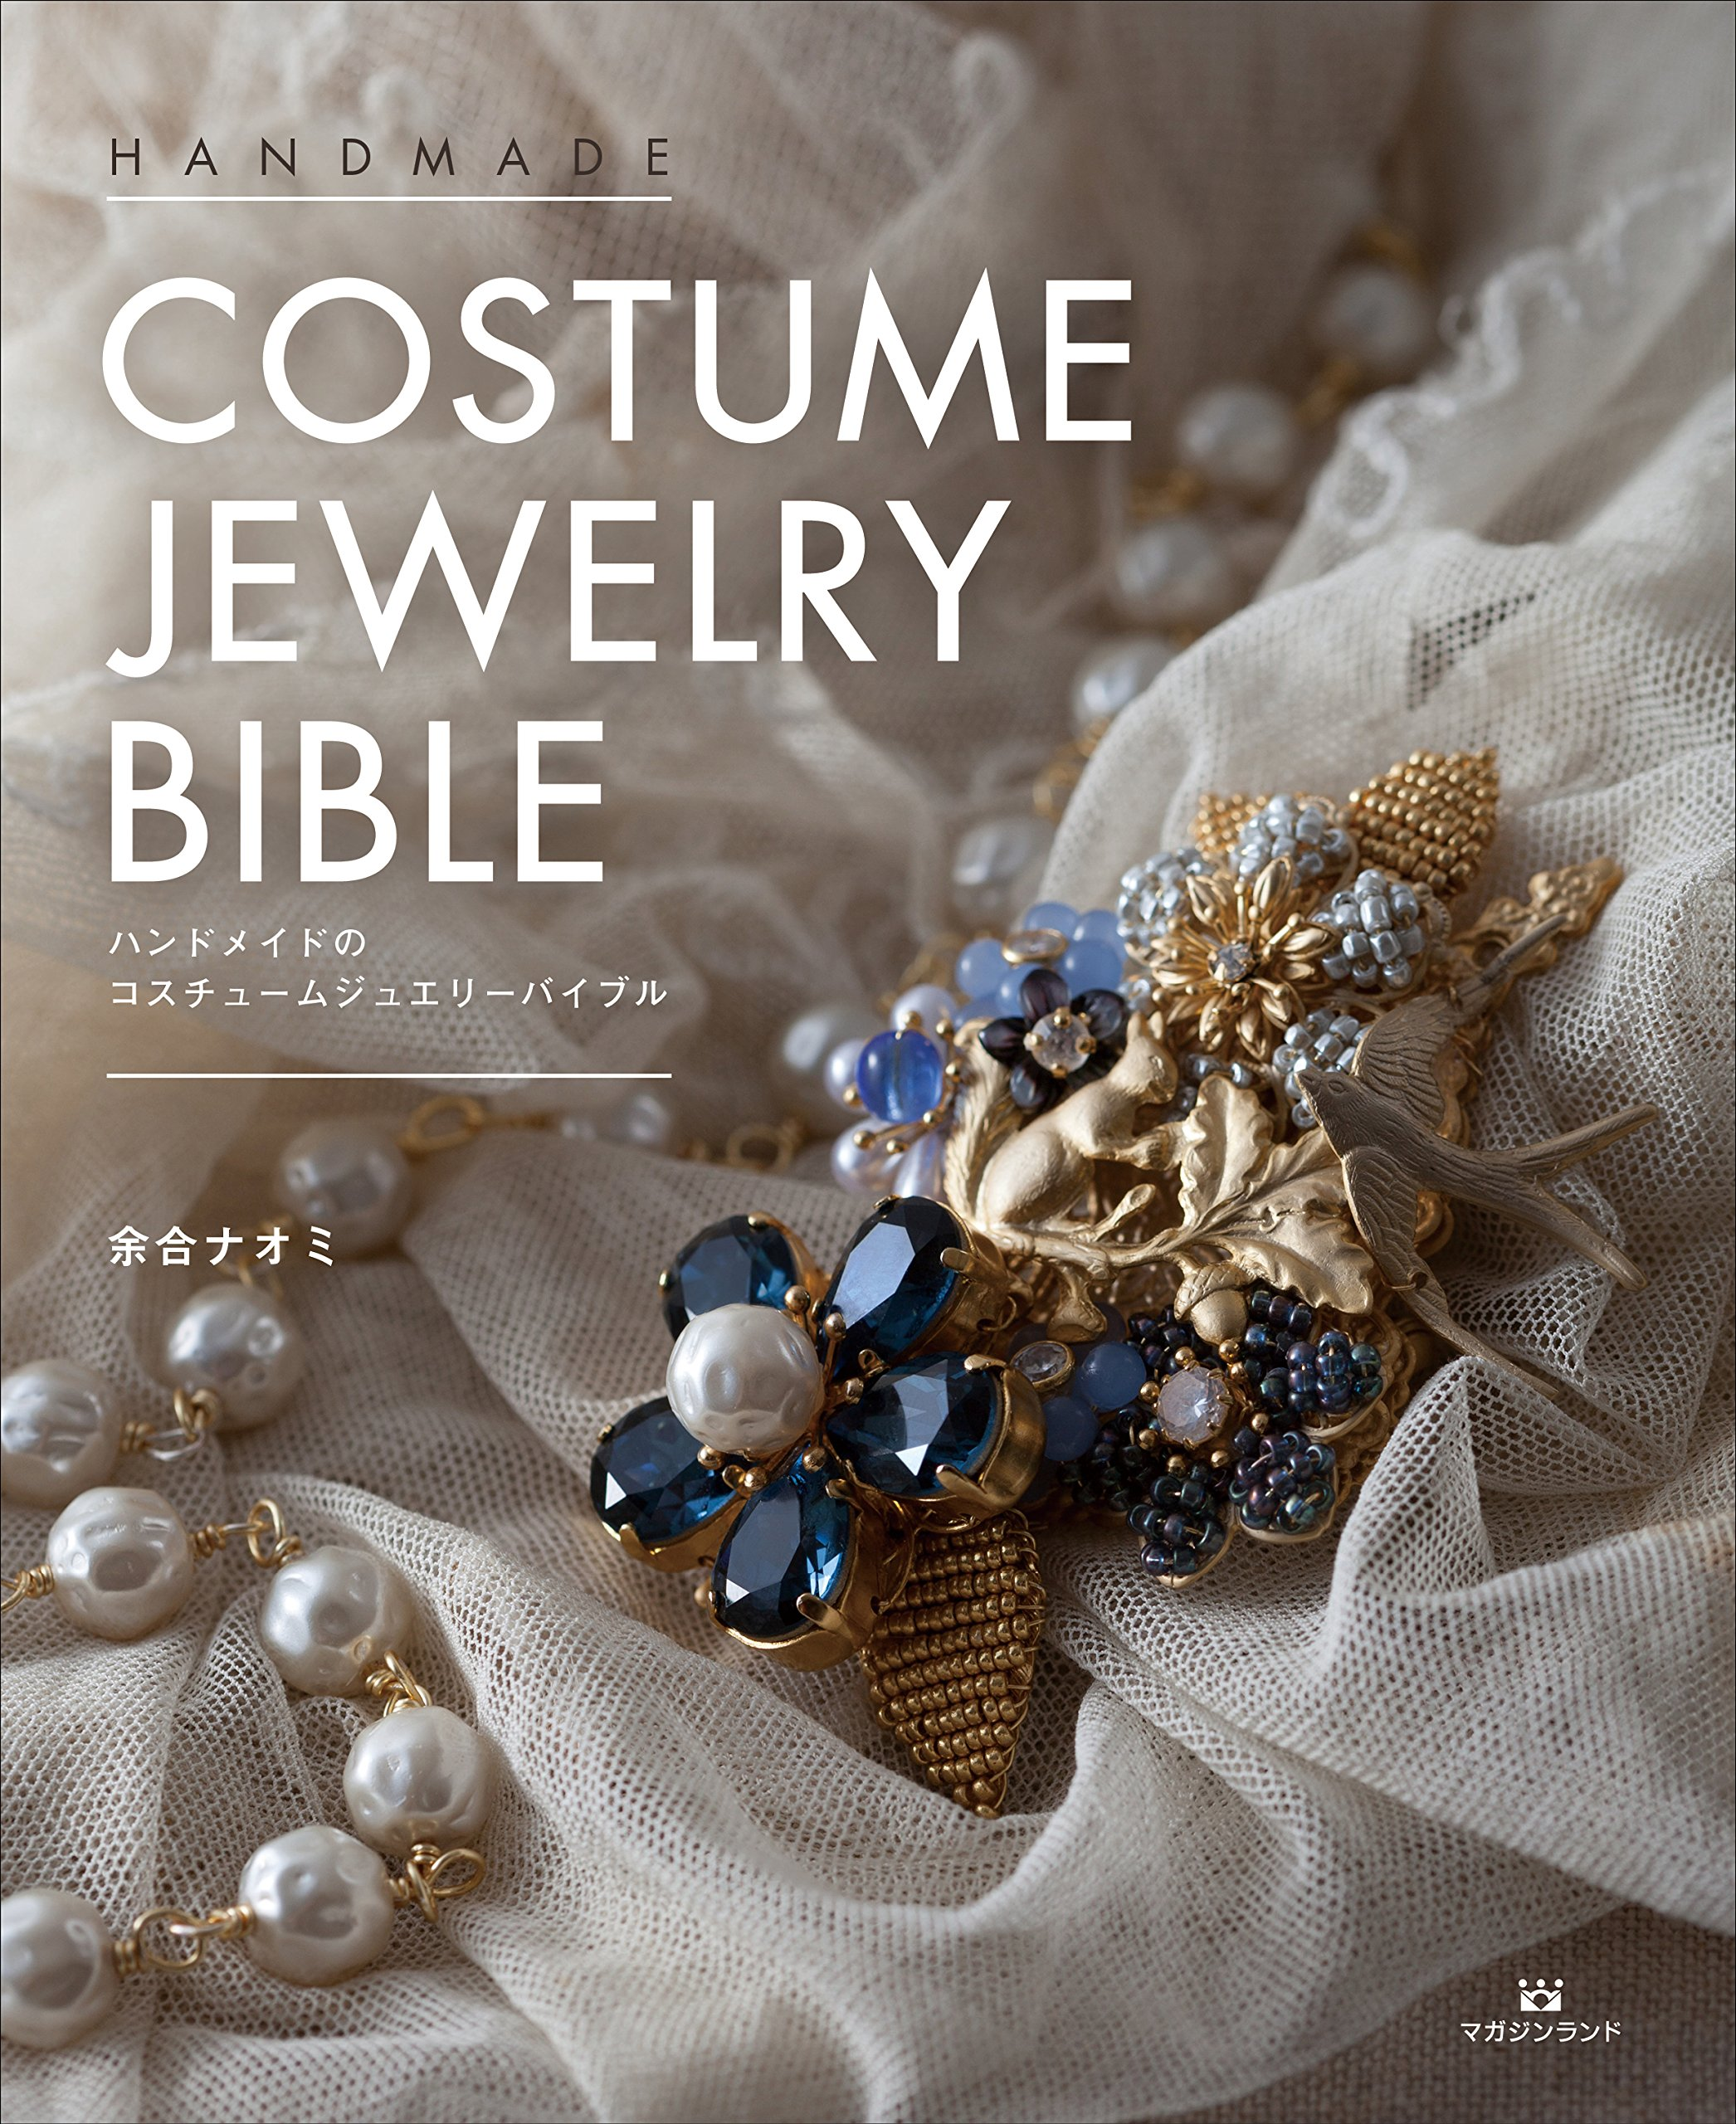 Handmade costume jewelry Bible